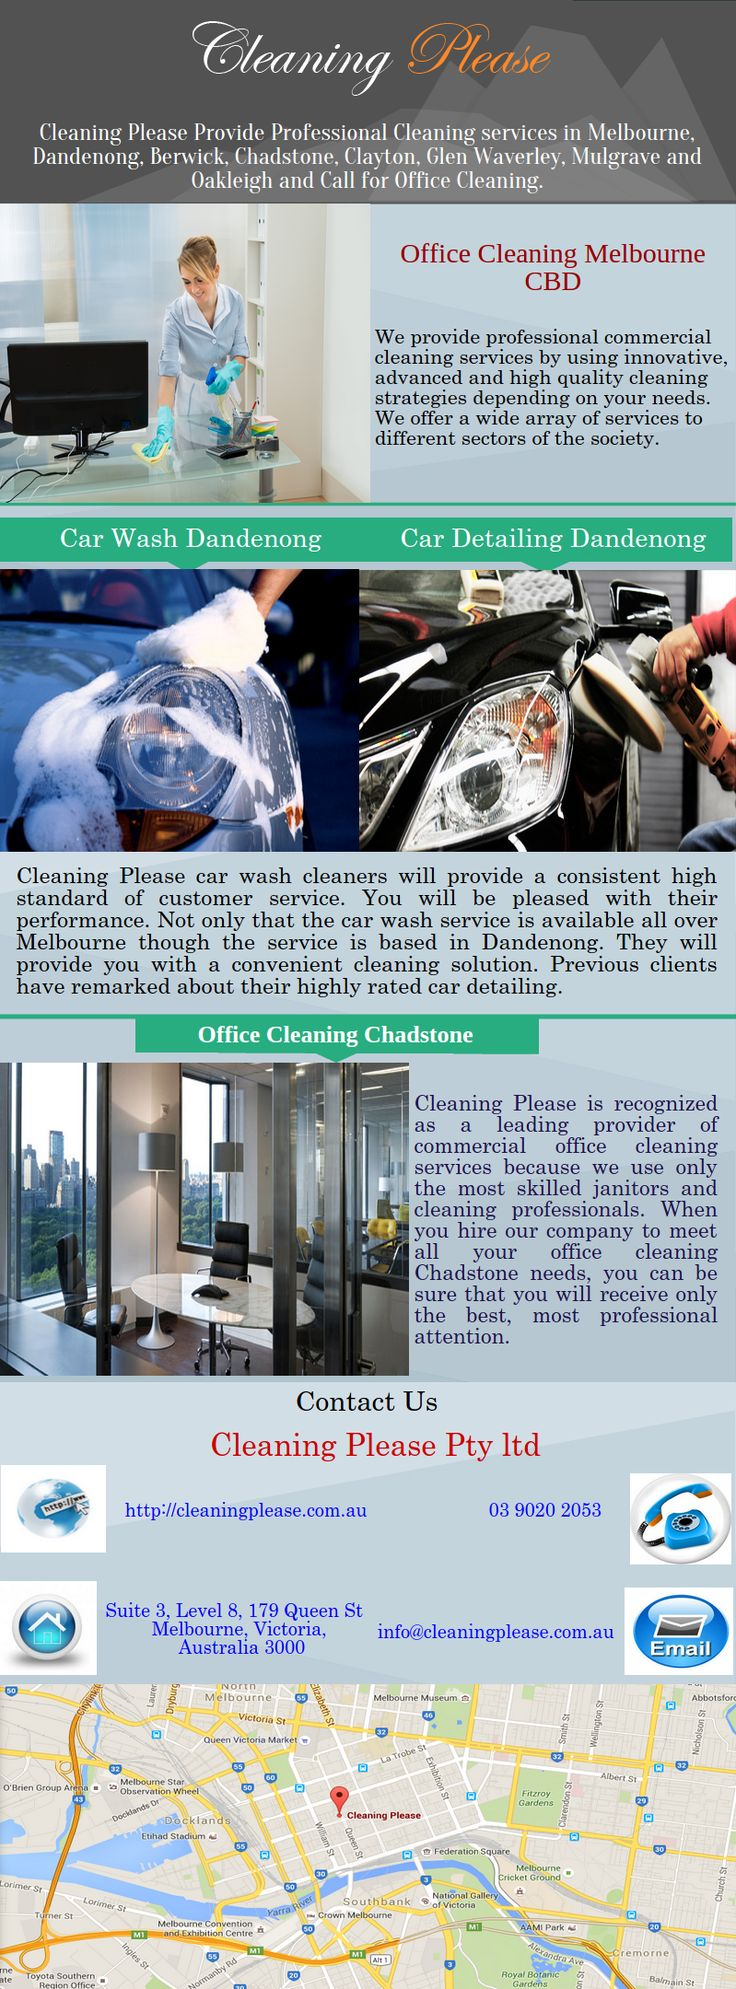 Steam car wash is the process of using steam vapor to clean a car s exterior and